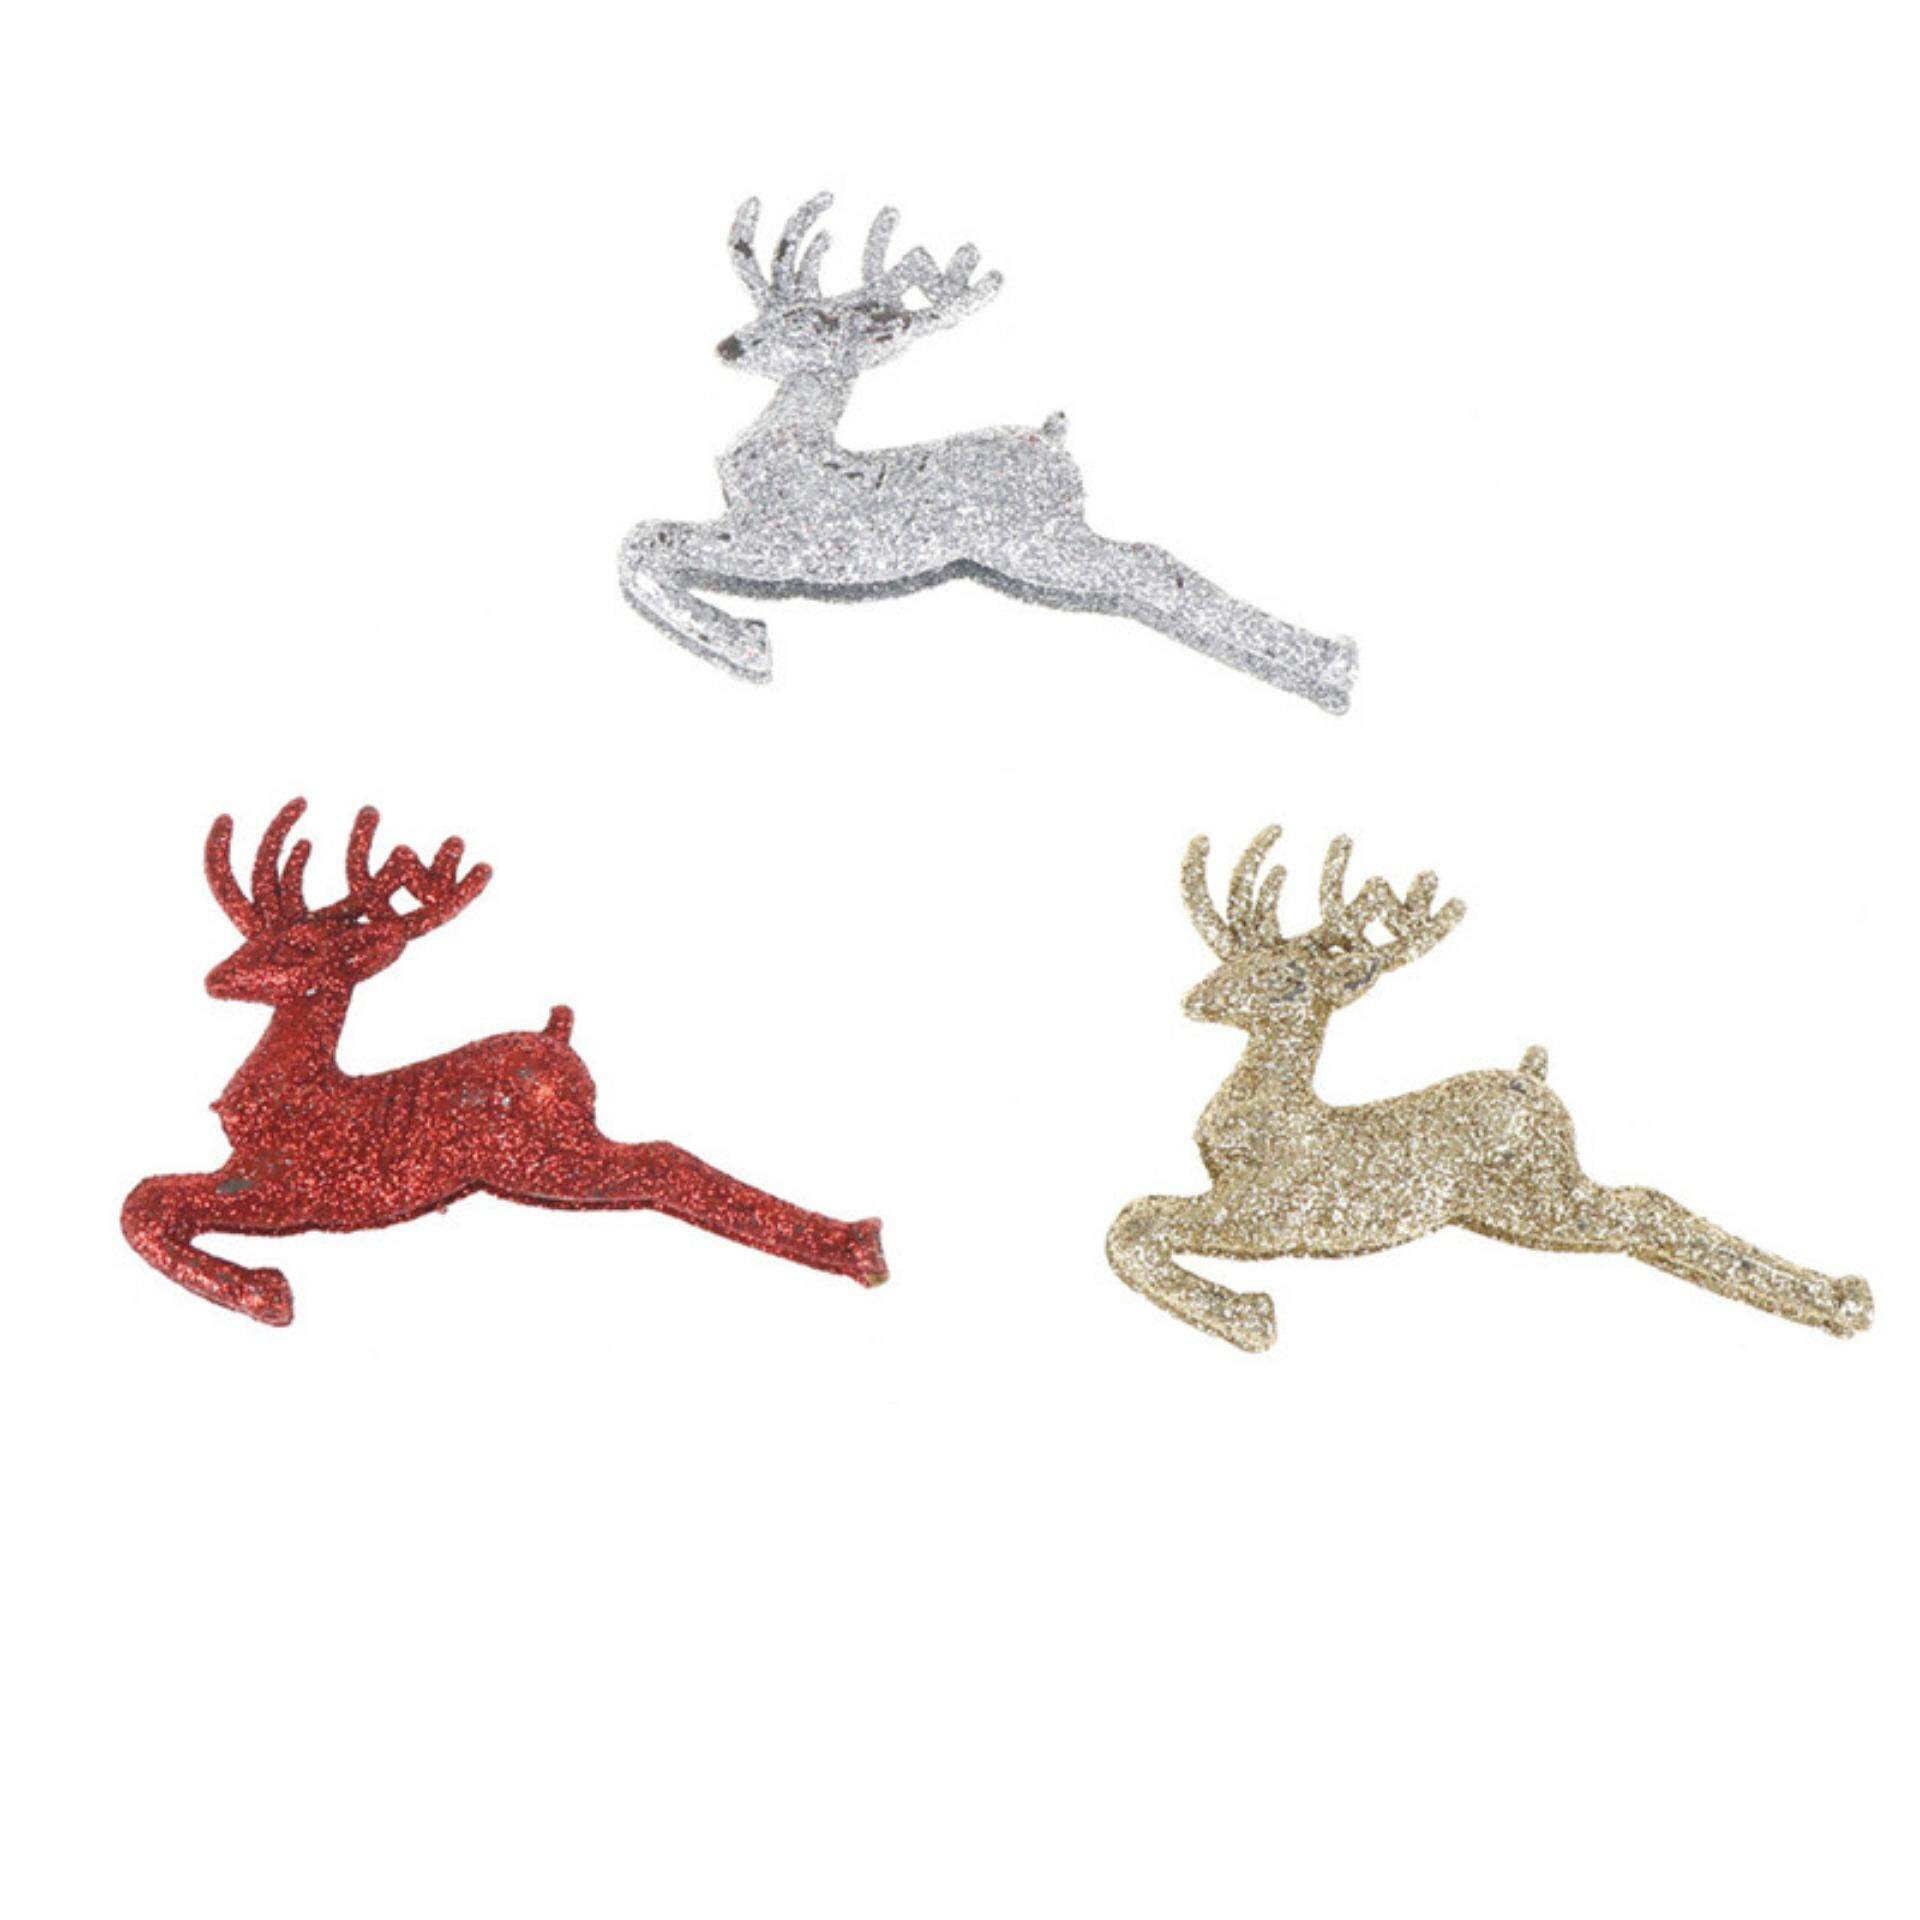 3pcs Christmas Tree Ornaments Reindeer Deer Hanging Xmas Baubles Decor - intl